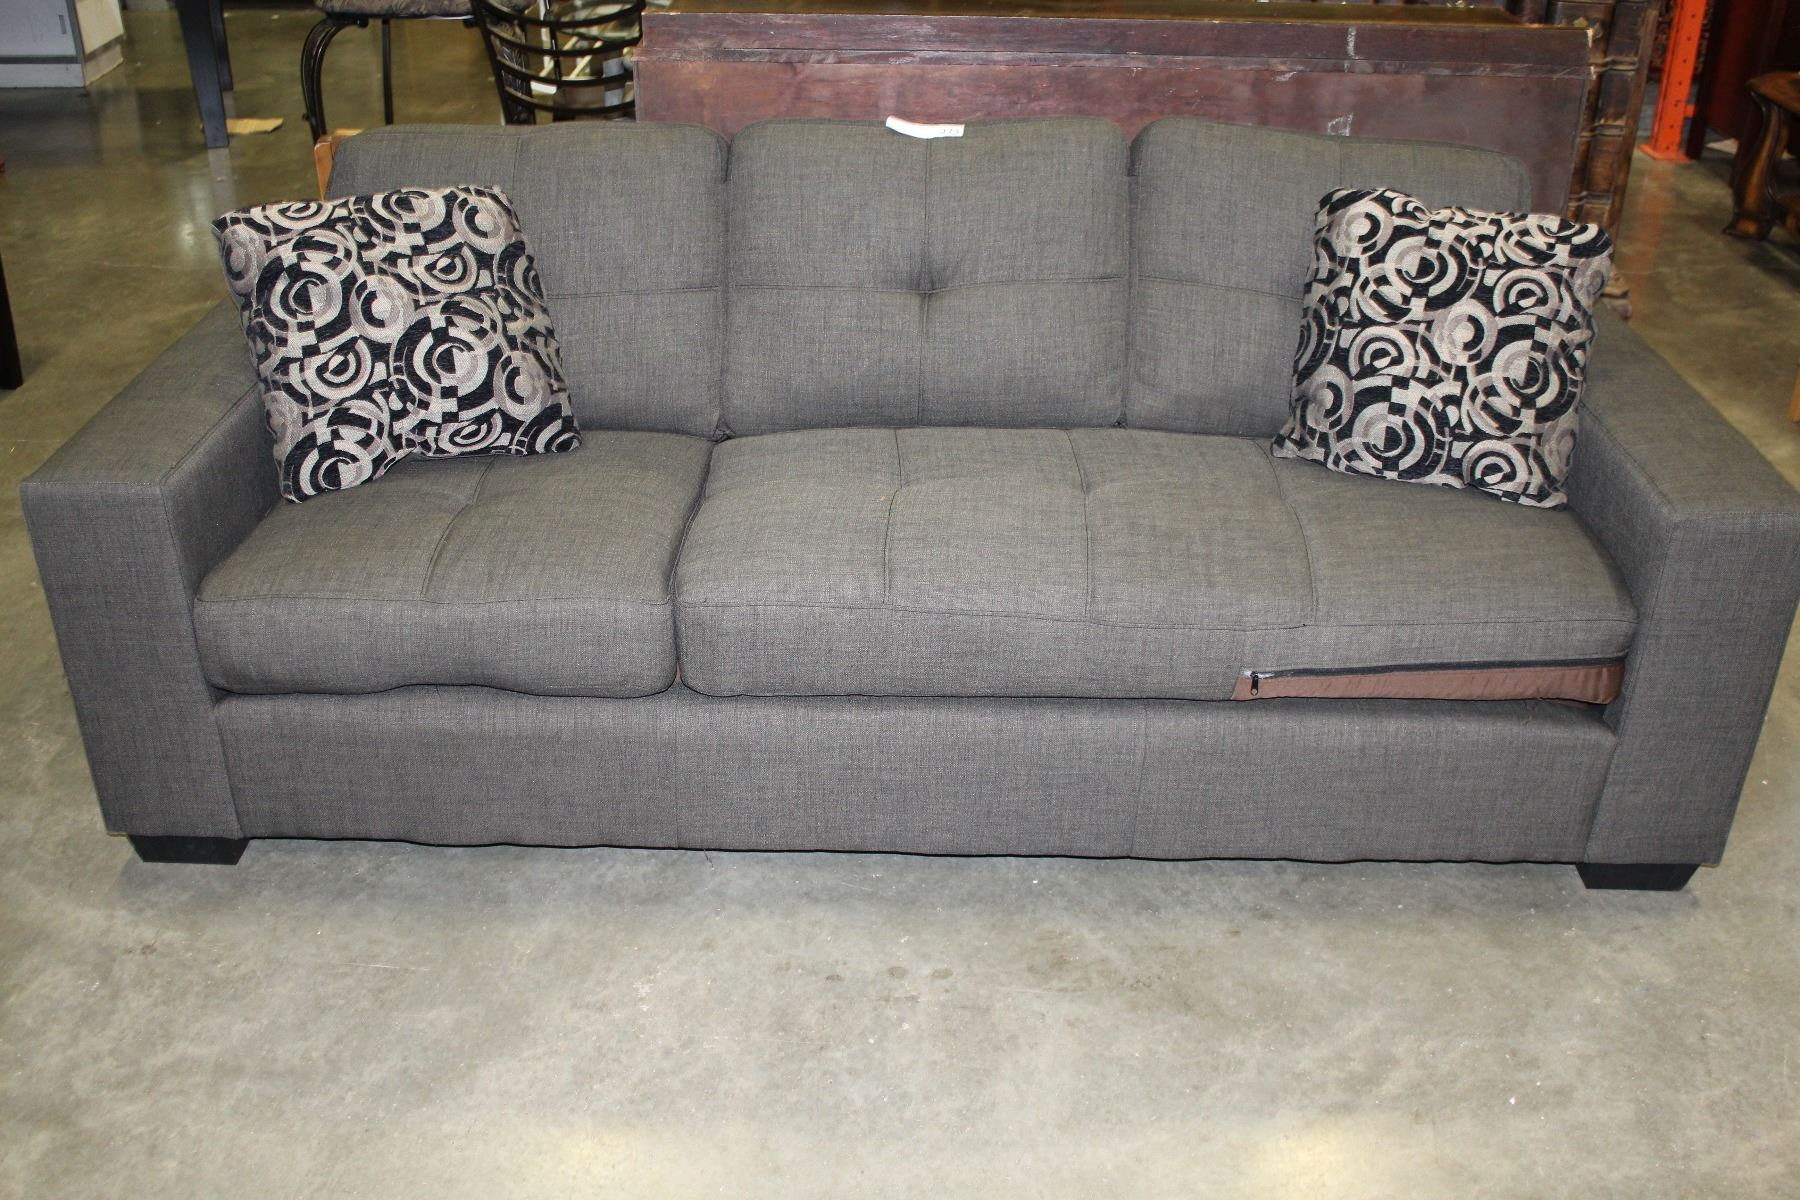 large square sofa cushions dallas dining set new home elegance grey tufted modern arm with